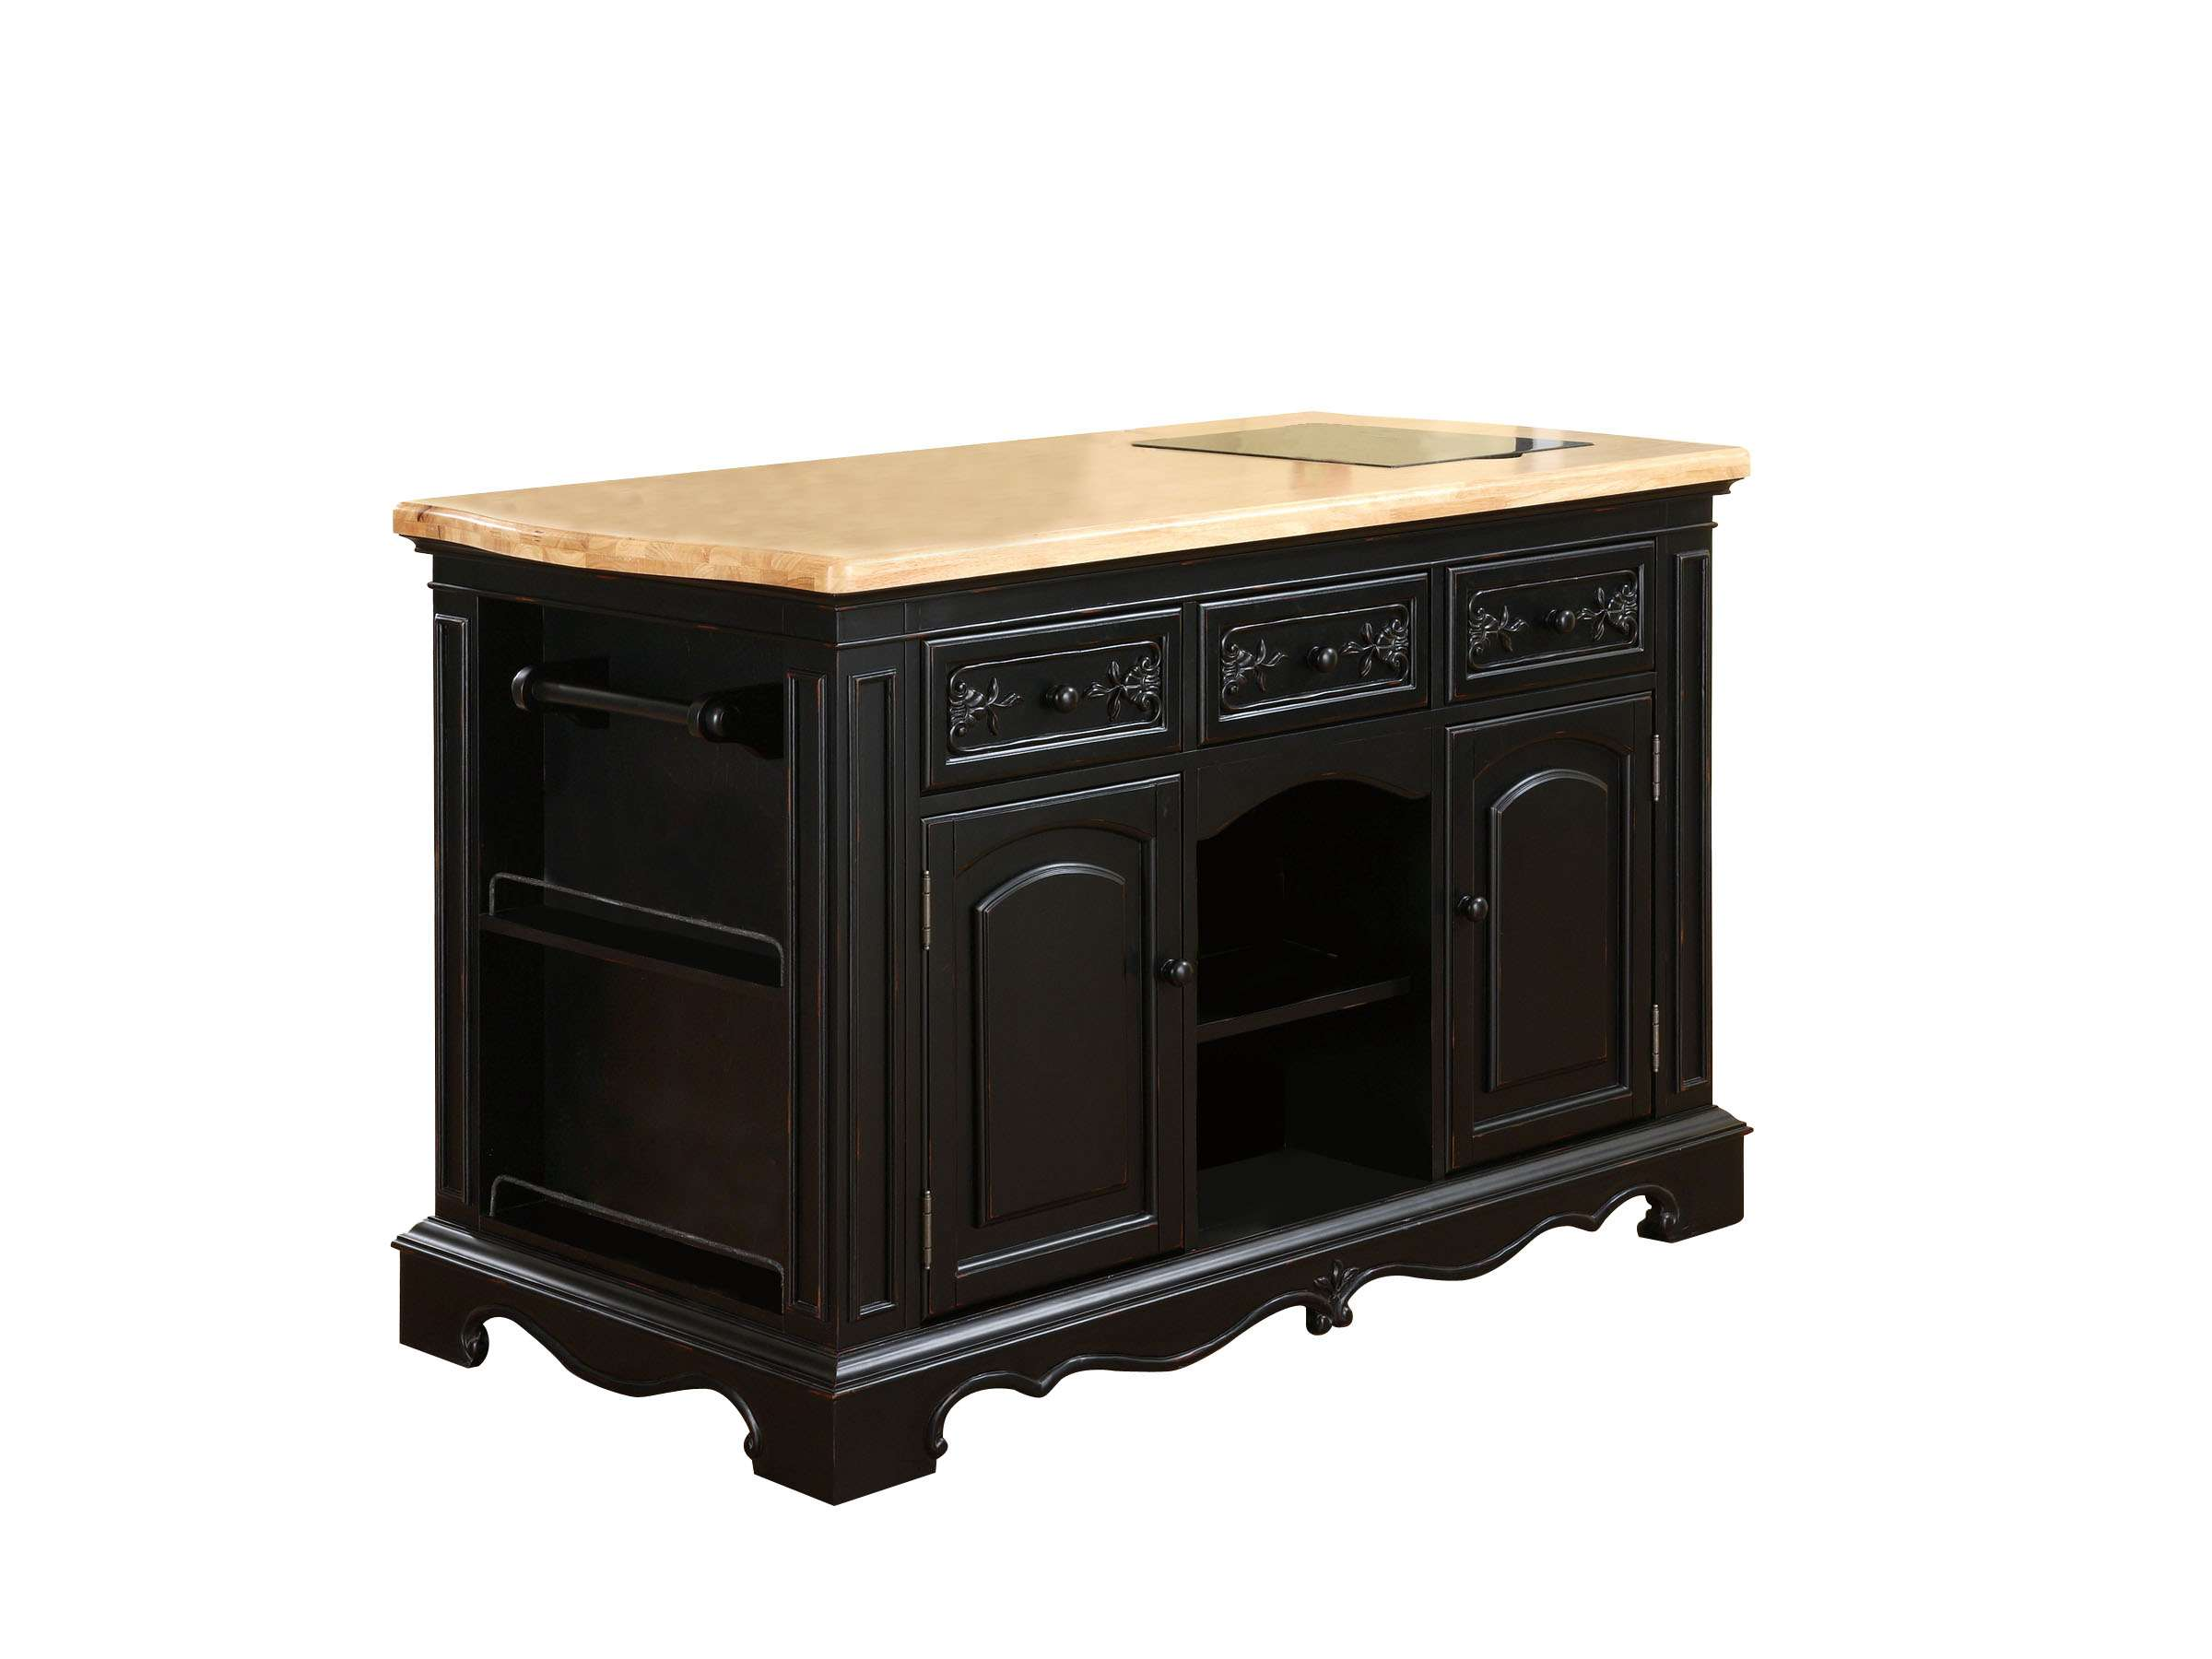 pennfield kitchen island powell pennfield kitchen island amp reviews 14534